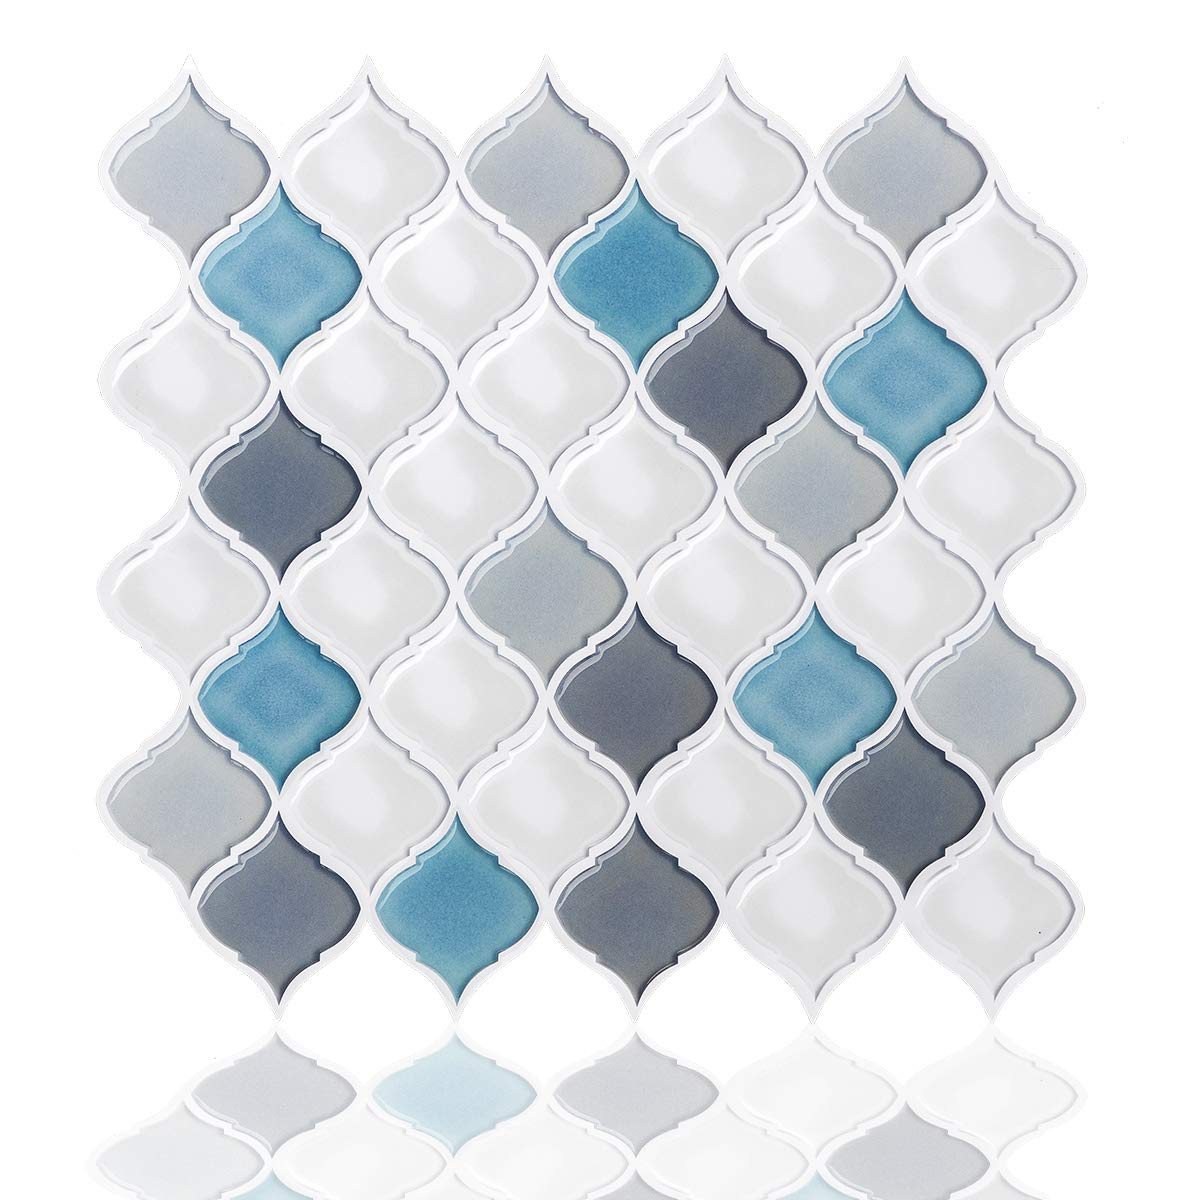 Peel and Stick Wall Tile for Kitchen Backsplash-Slant Blue&White Arabesque Tile Backsplash-Kitchen Backsplash Tiles Peel and Stick Wall Stickers,6 Sheets by FAM STICKTILES